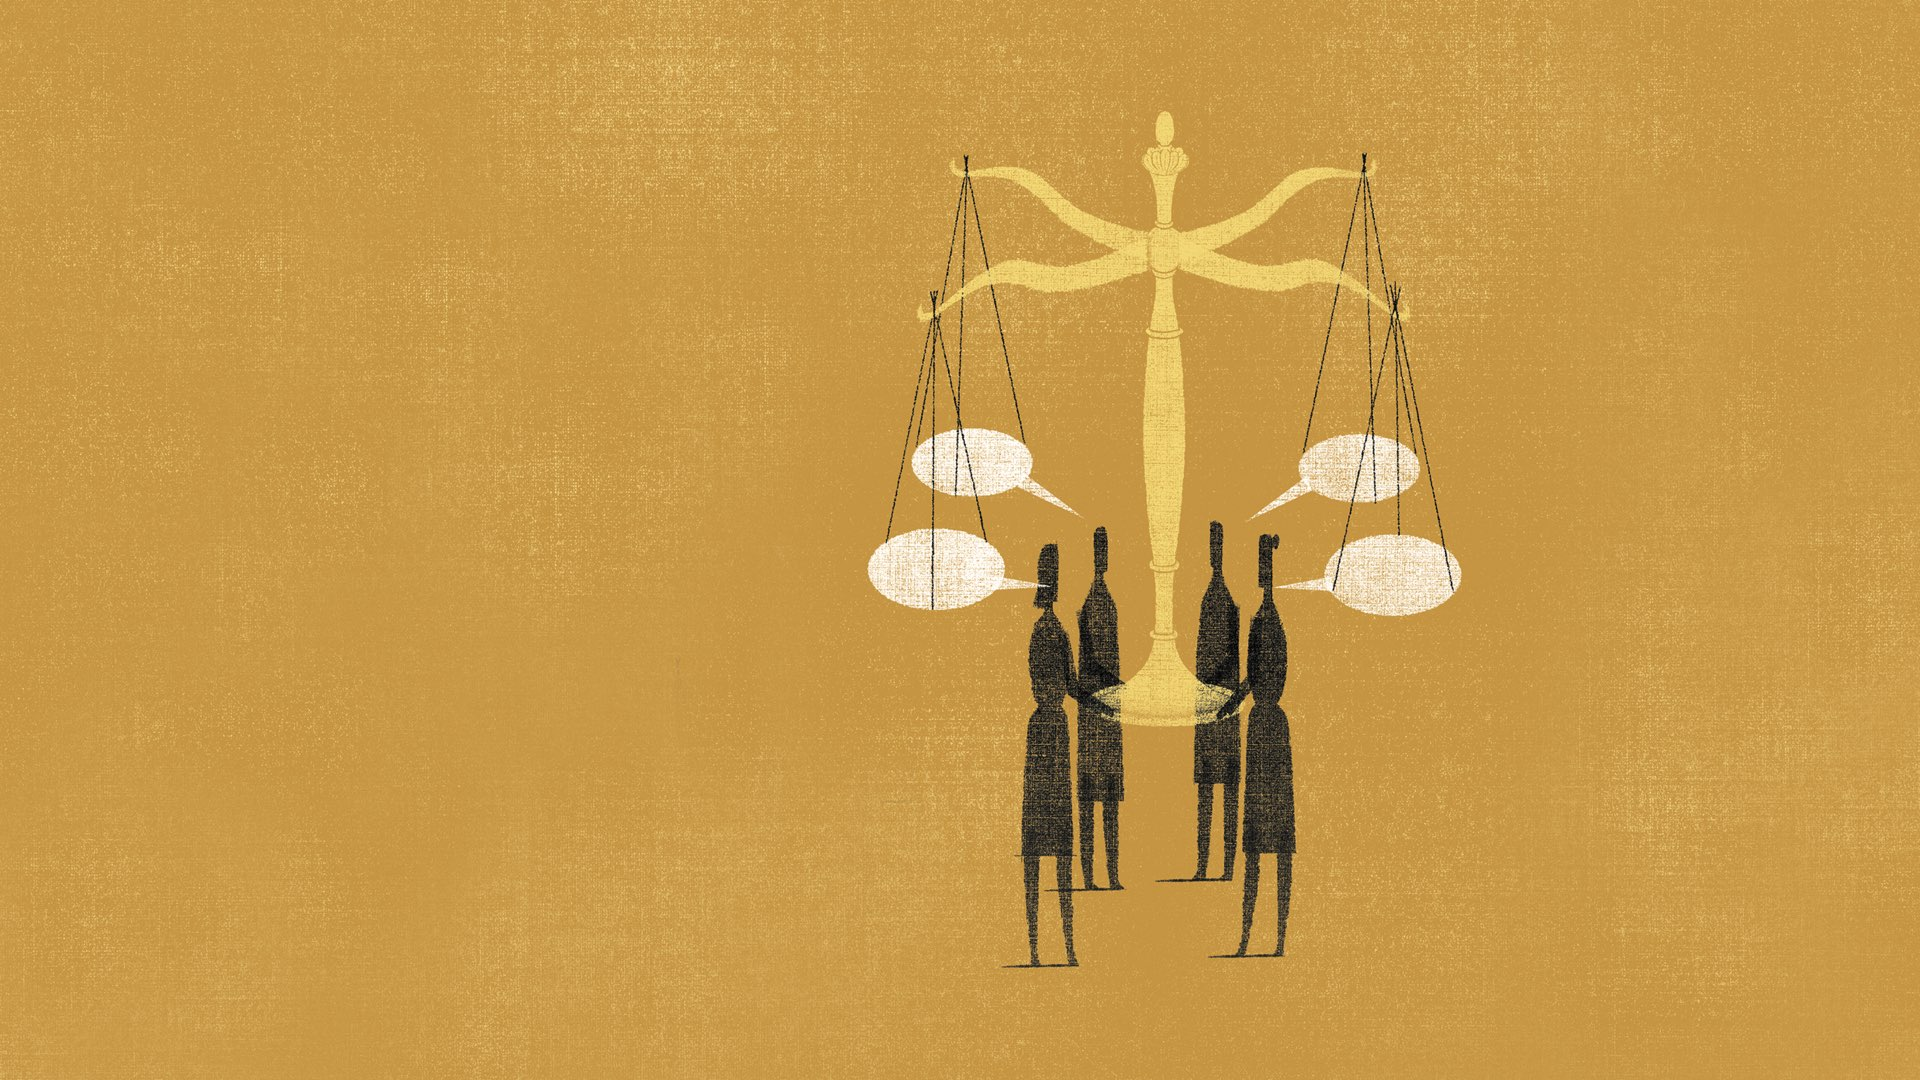 Graphic artwork on a mustard-colored background showing four dark silhouettes holding and balancing the scales of justice